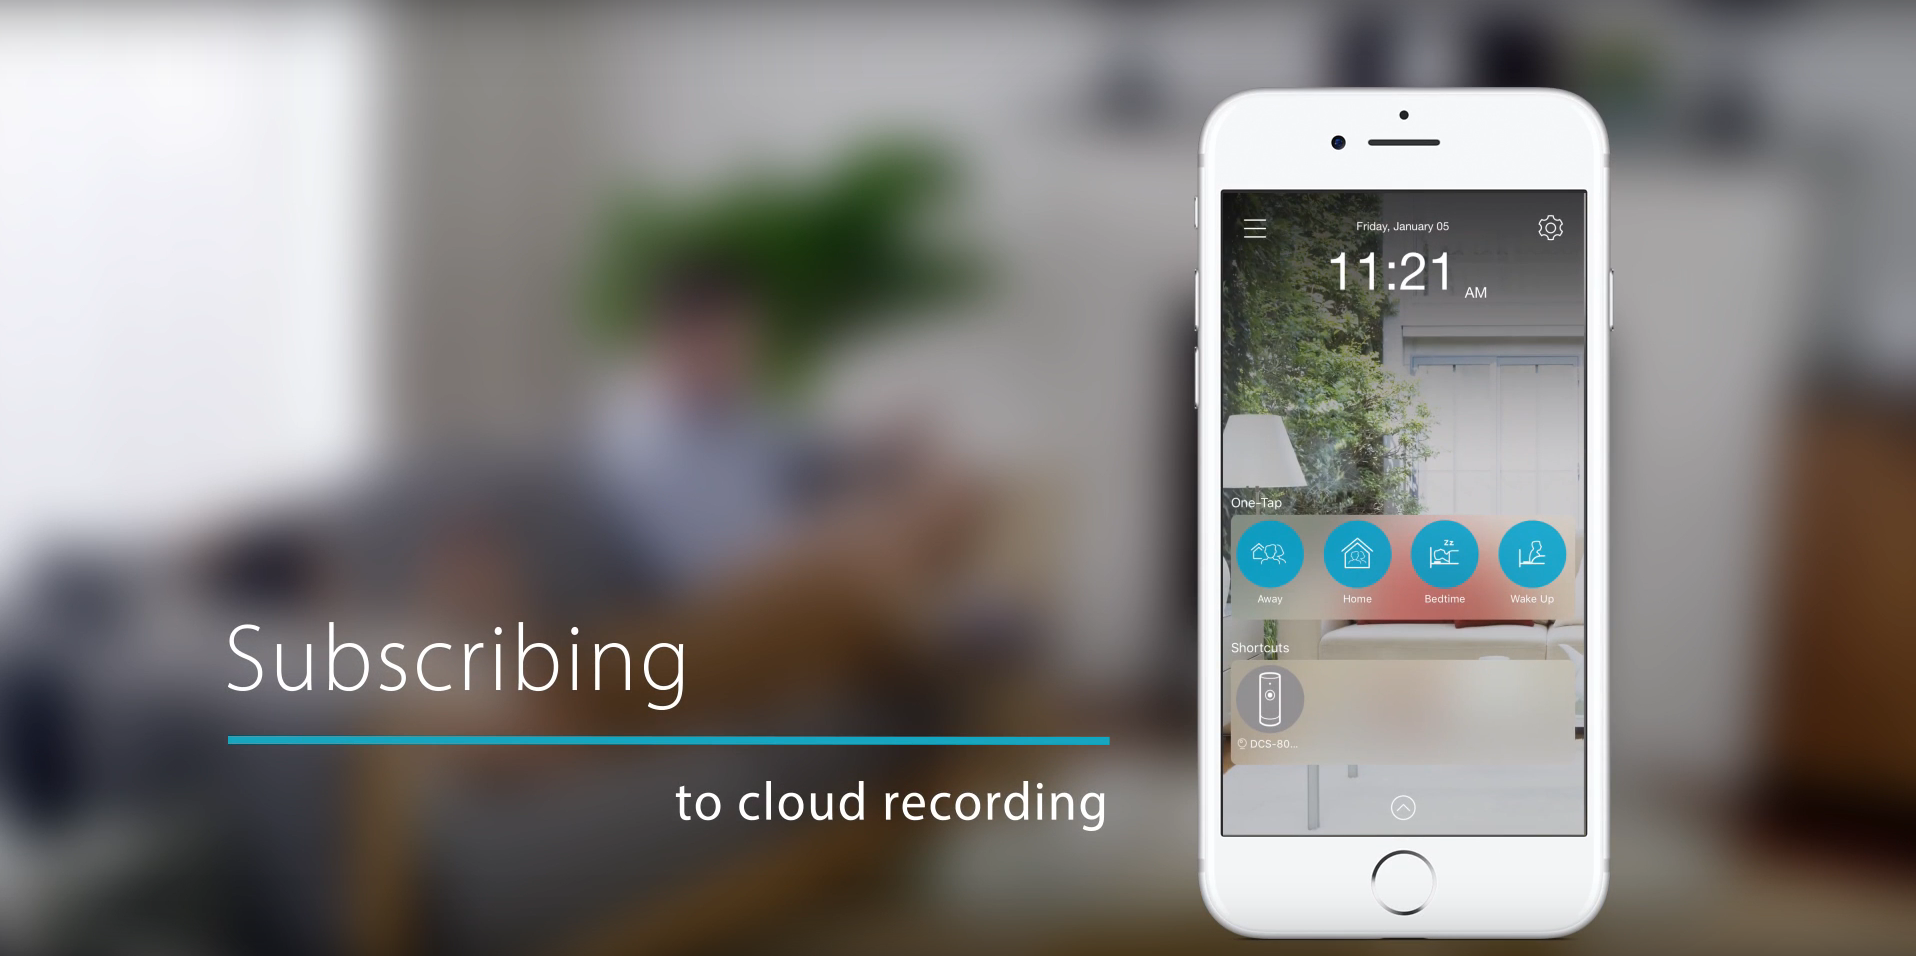 mydlink video setup tutorial - Subscribing to Cloud Recording